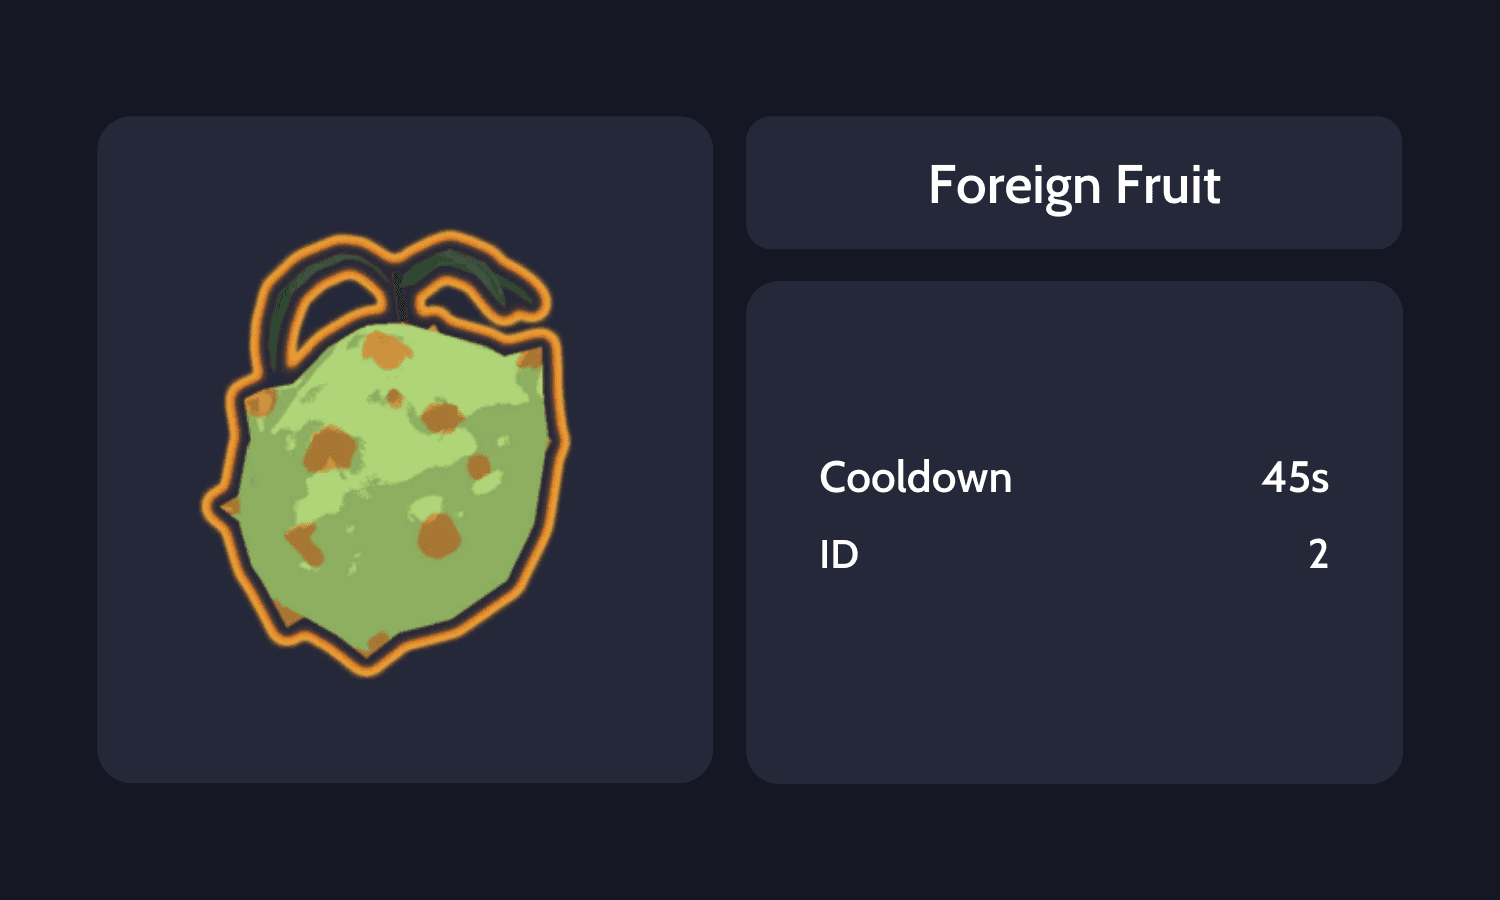 Foreign Fruit Info Card